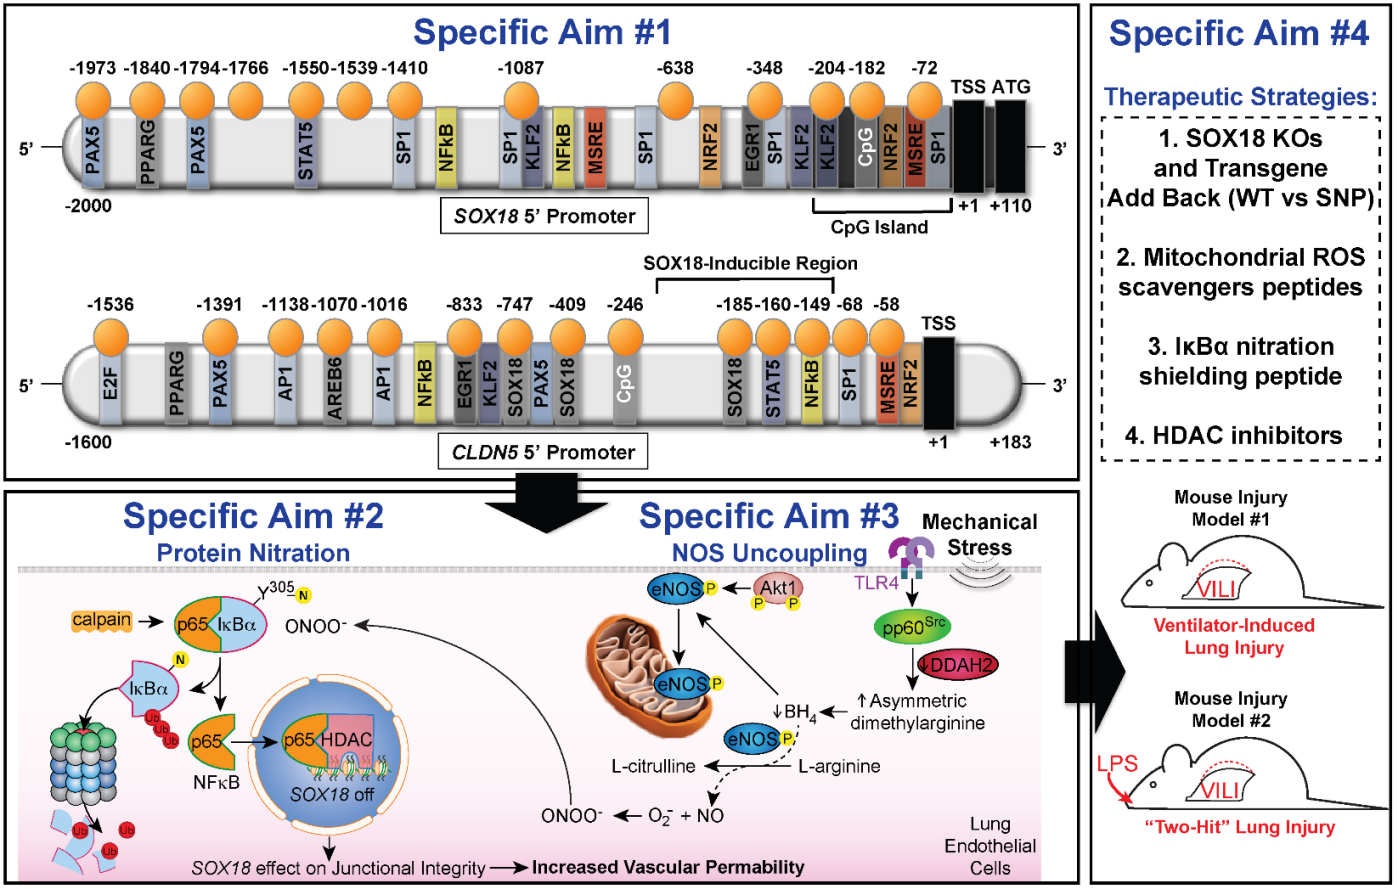 Figure: Effects of Inflammatory Signaling on the SOX18/CLDN5 Axis. SA #1 will assess the genetic and epigenetic regulation of SOX18 and CLDN5 promoter activities by mechanical stress and define how promoter SNPs alter promoter activities. SA #2 will define mechanical stress-evoked PTMs (nitration) involved in NFκ-B mediated activation and tight junction disruption. SA #3 will define the signaling pathway responsible for generating the peroxynitrite in response to mechanical stress and the PTMs involved (phosphorylation, ubiquitination). SA #4 will evaluate SOX18 over-expression, novel mitochondrial targeted ROS-scavenging peptides, IκBα targeted nitration-shielding peptides, and HDAC inhibitors as potential VILI therapeutic strategies to reducing the severity of VILI/ARDS.